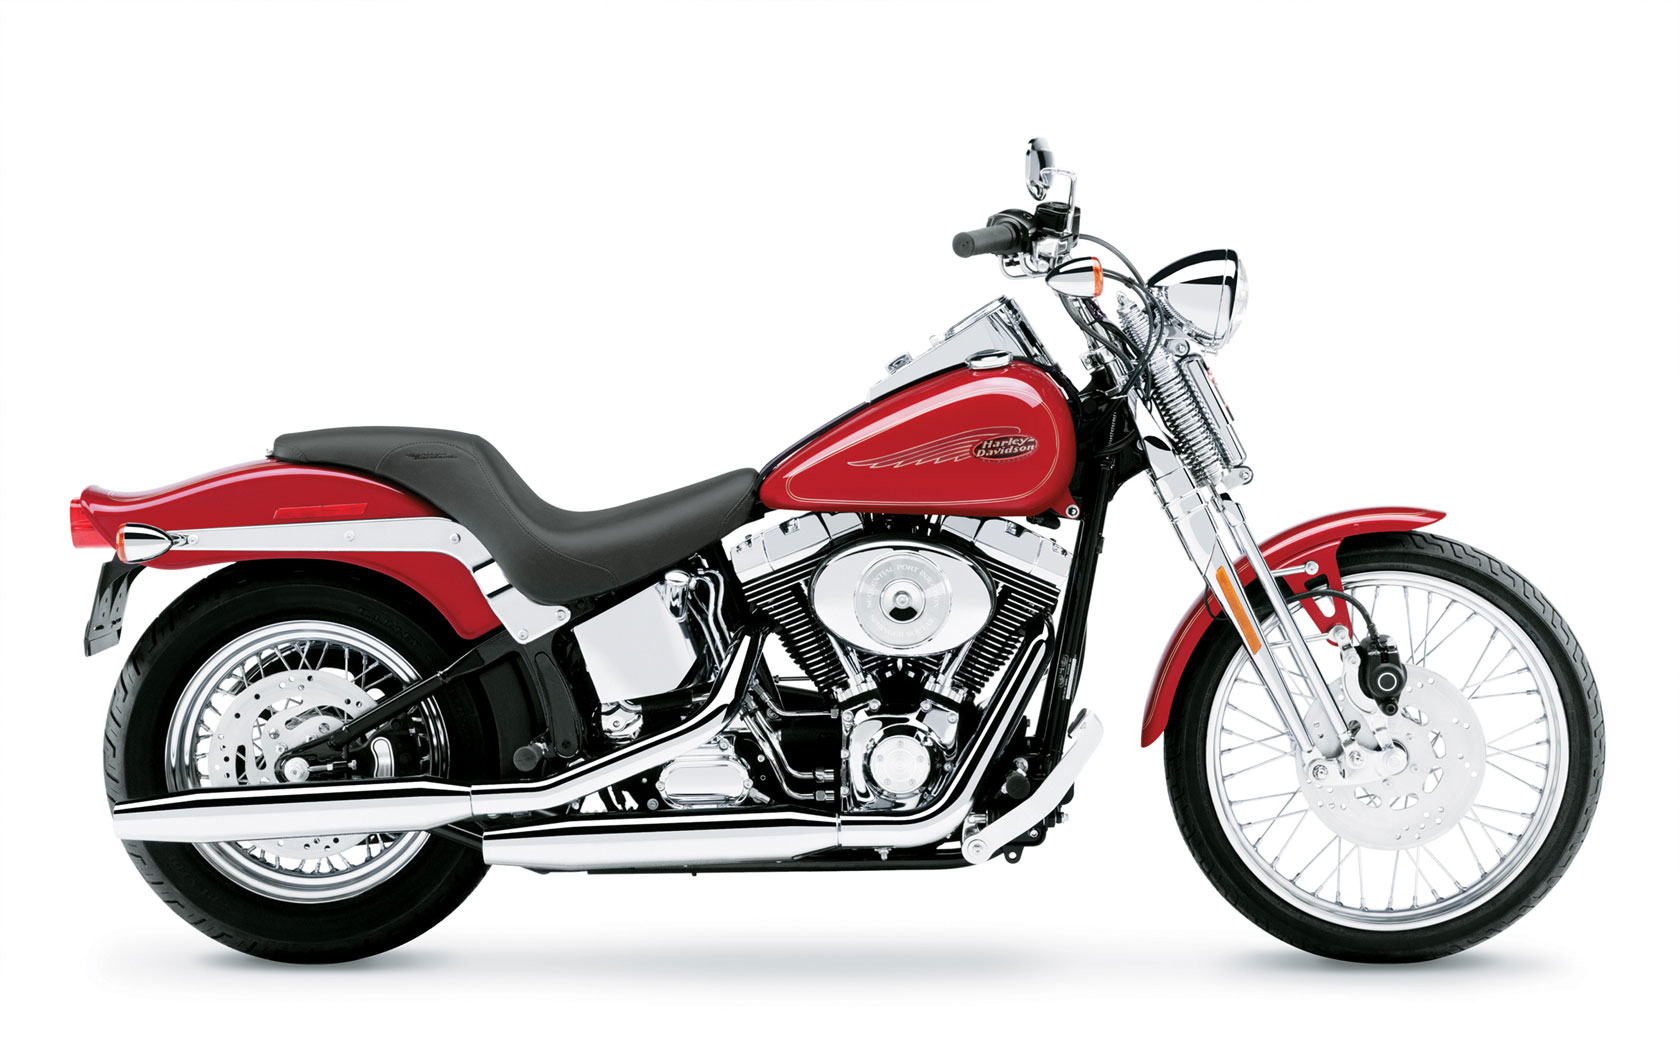 1997 harley dyna with Harley Davidson Fxsts Springer Softail 2000 on 1060636 Oil Change furthermore Braided Stainless Steel Cable Kits For Baggers further 2016 Street Glide Fuse Box likewise Watch additionally MOTORCYCLE 20REPAIRING 20SEPOLIA 20ATTIKI 20  20RESTORATIONS 20MOTO 20BMW 20  20CUSTOMIZING.